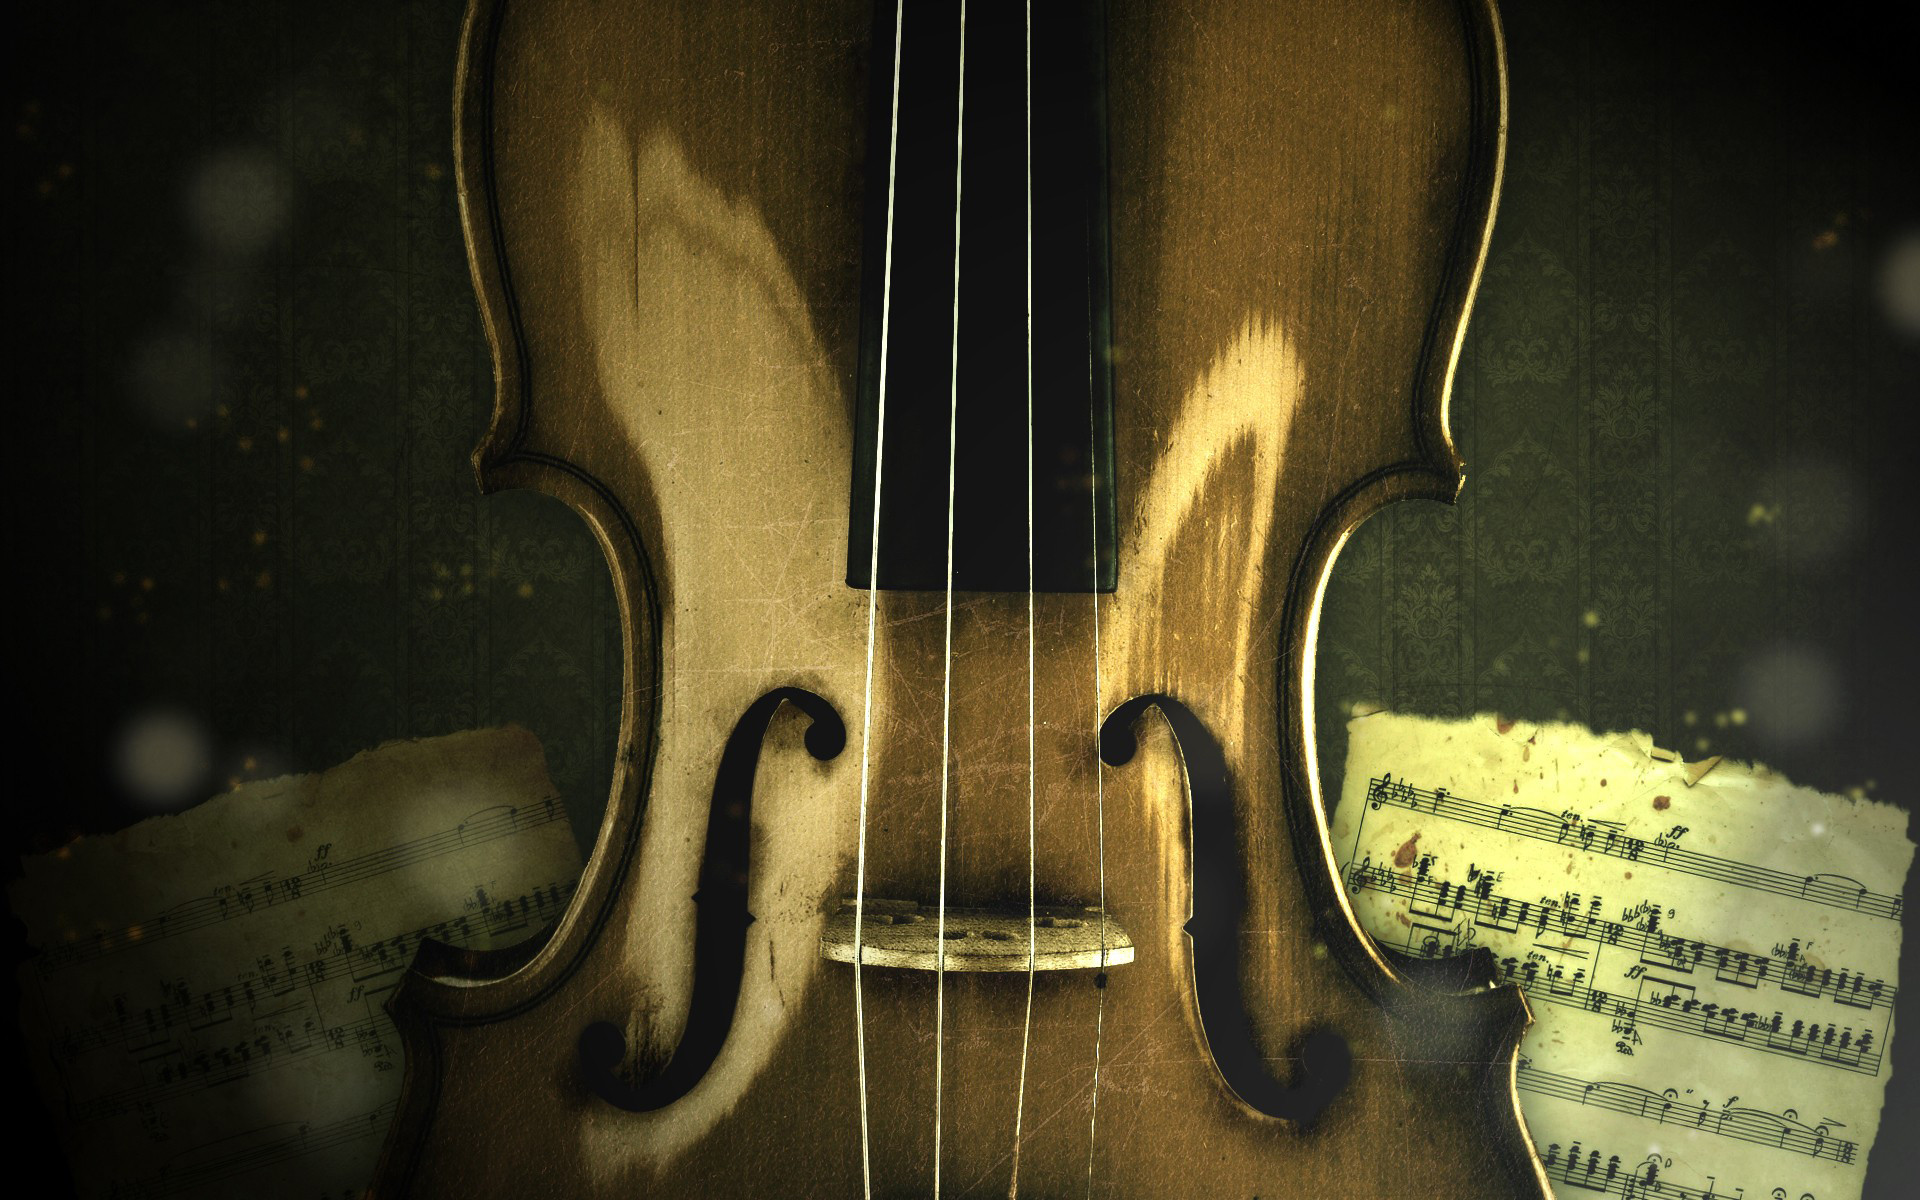 Another-beautiful-violin-wallpaper-wp4603671-1